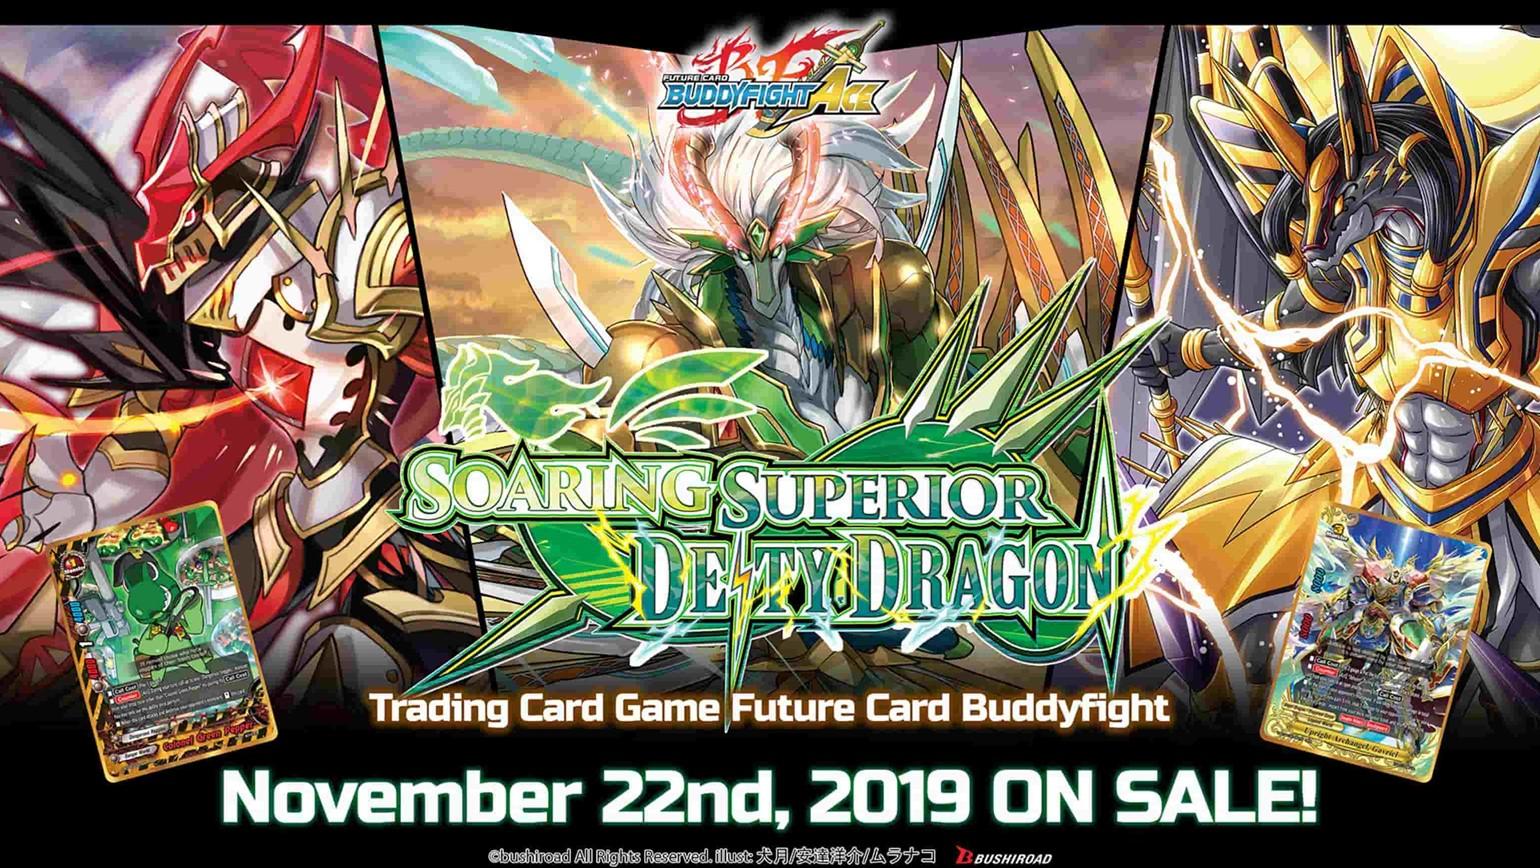 Future Card Buddyfight: Soaring Superior Deity Dragon Coming November 22th